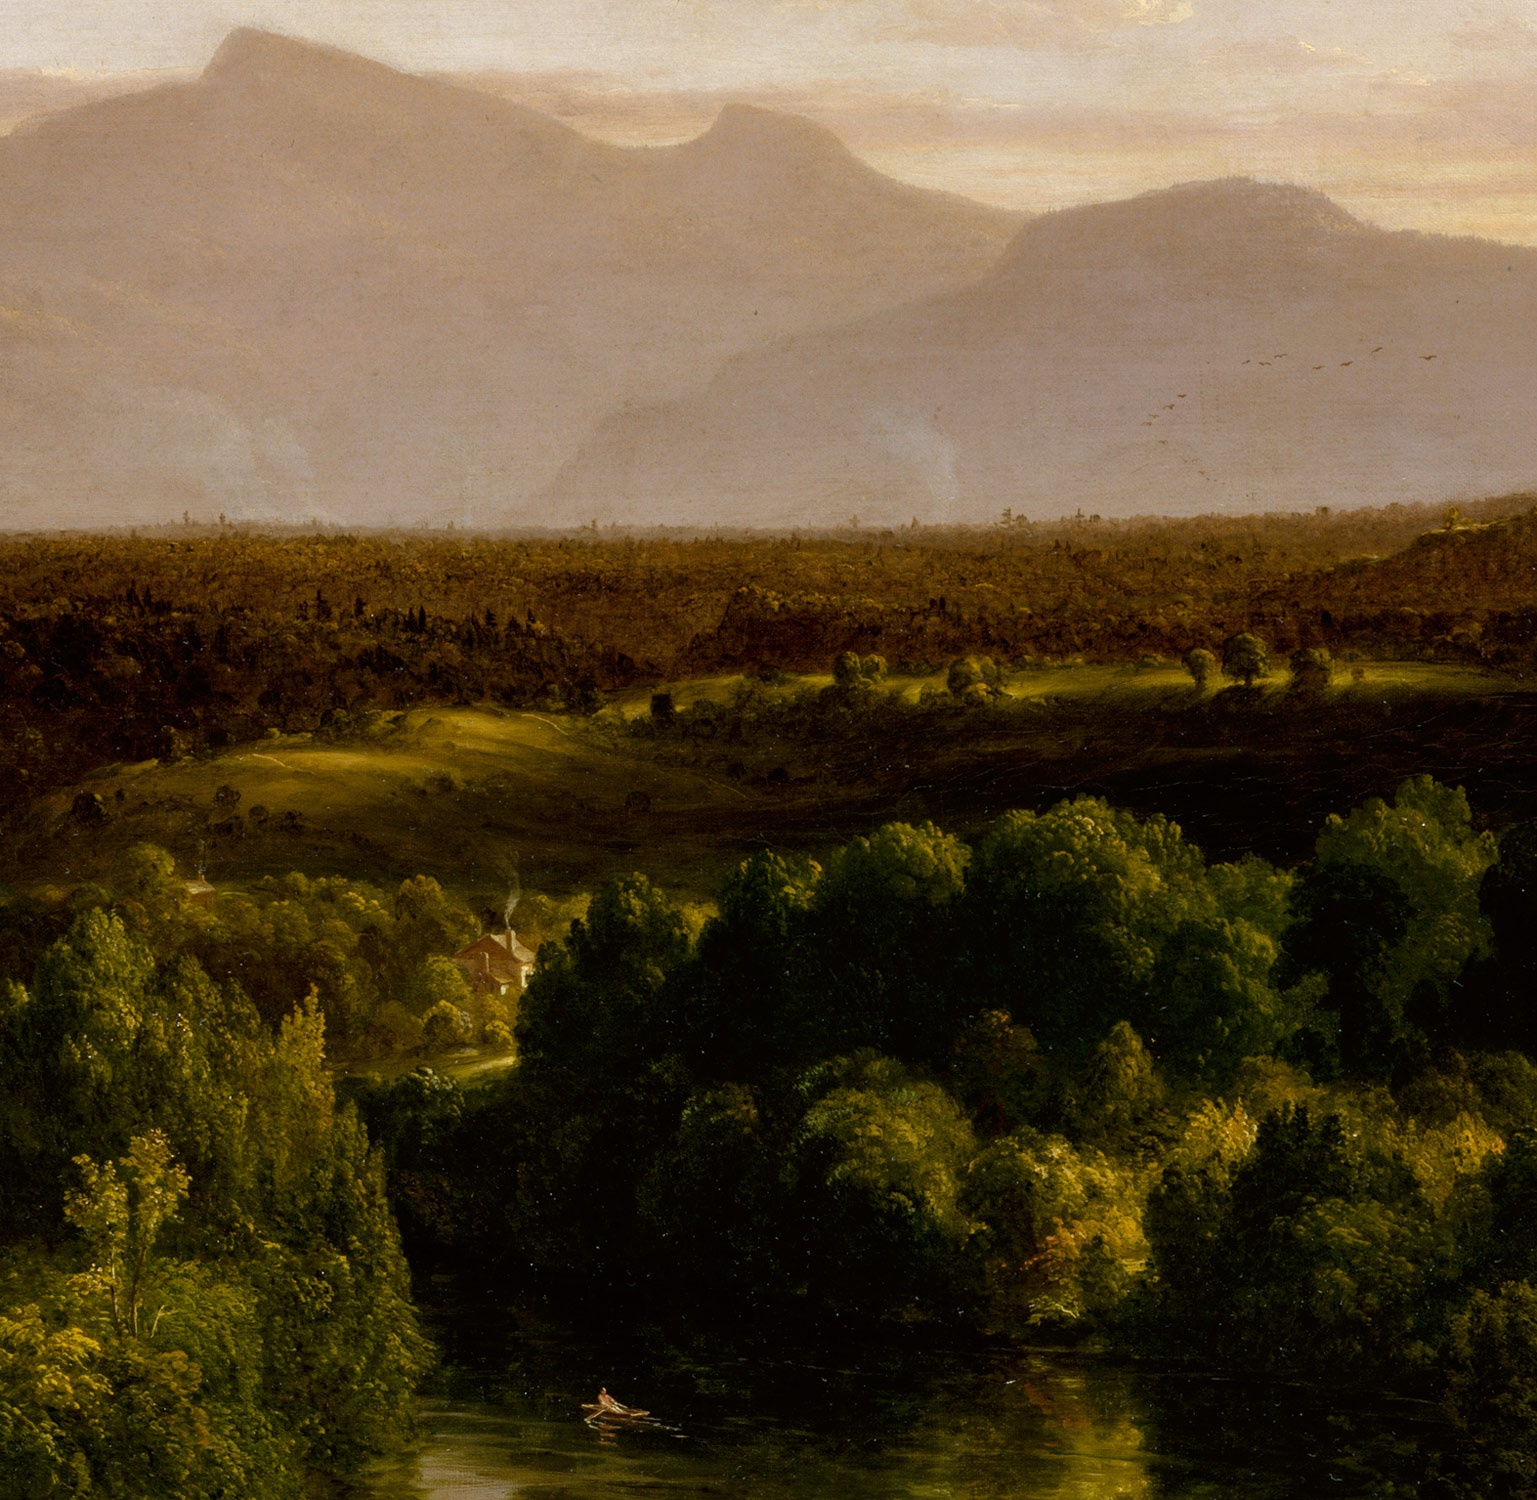 Detail from 'View on the Catskill — Early Autumn, 1836-37.' Thomas Cole, British-American painter. Courtesy of The Metropolitan Museum of Art, New York, USA.